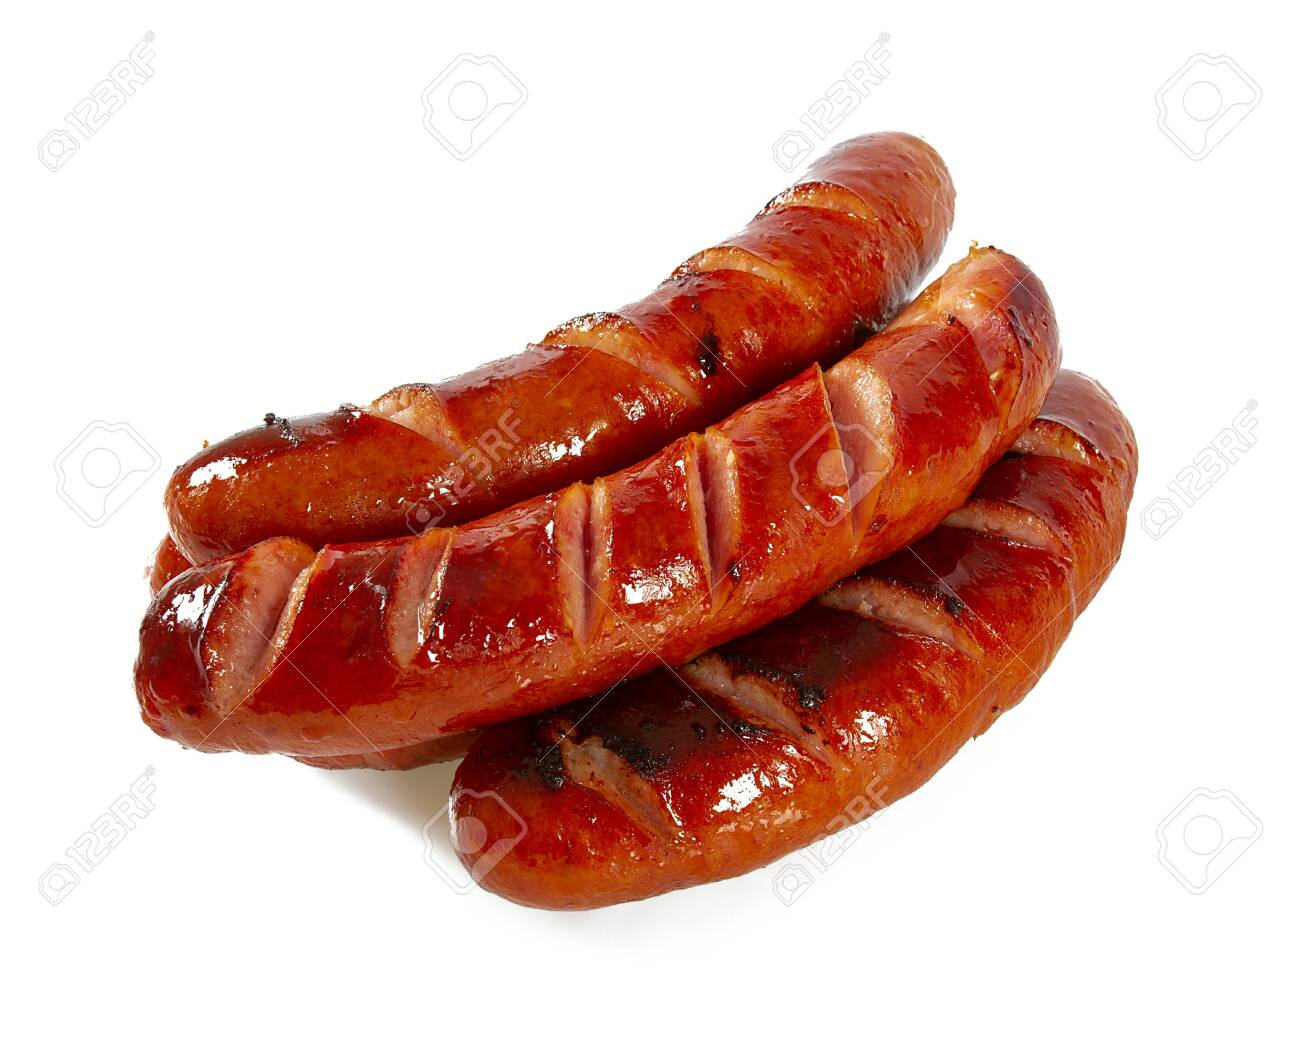 Grilled sausages isolated on a white background - 121103987